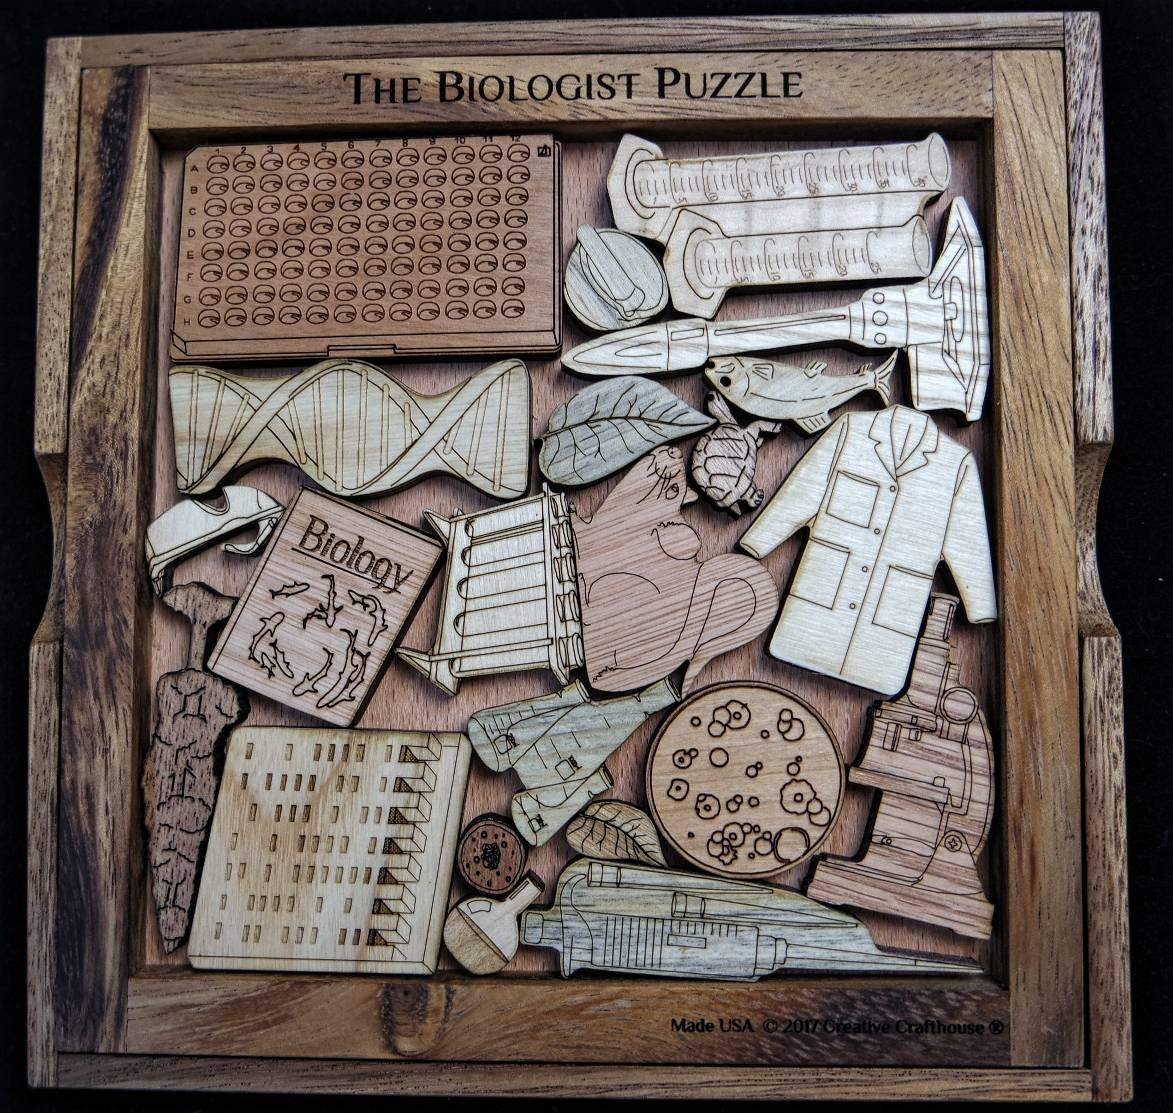 Biology Scientists Dilemma The Biologist puzzle